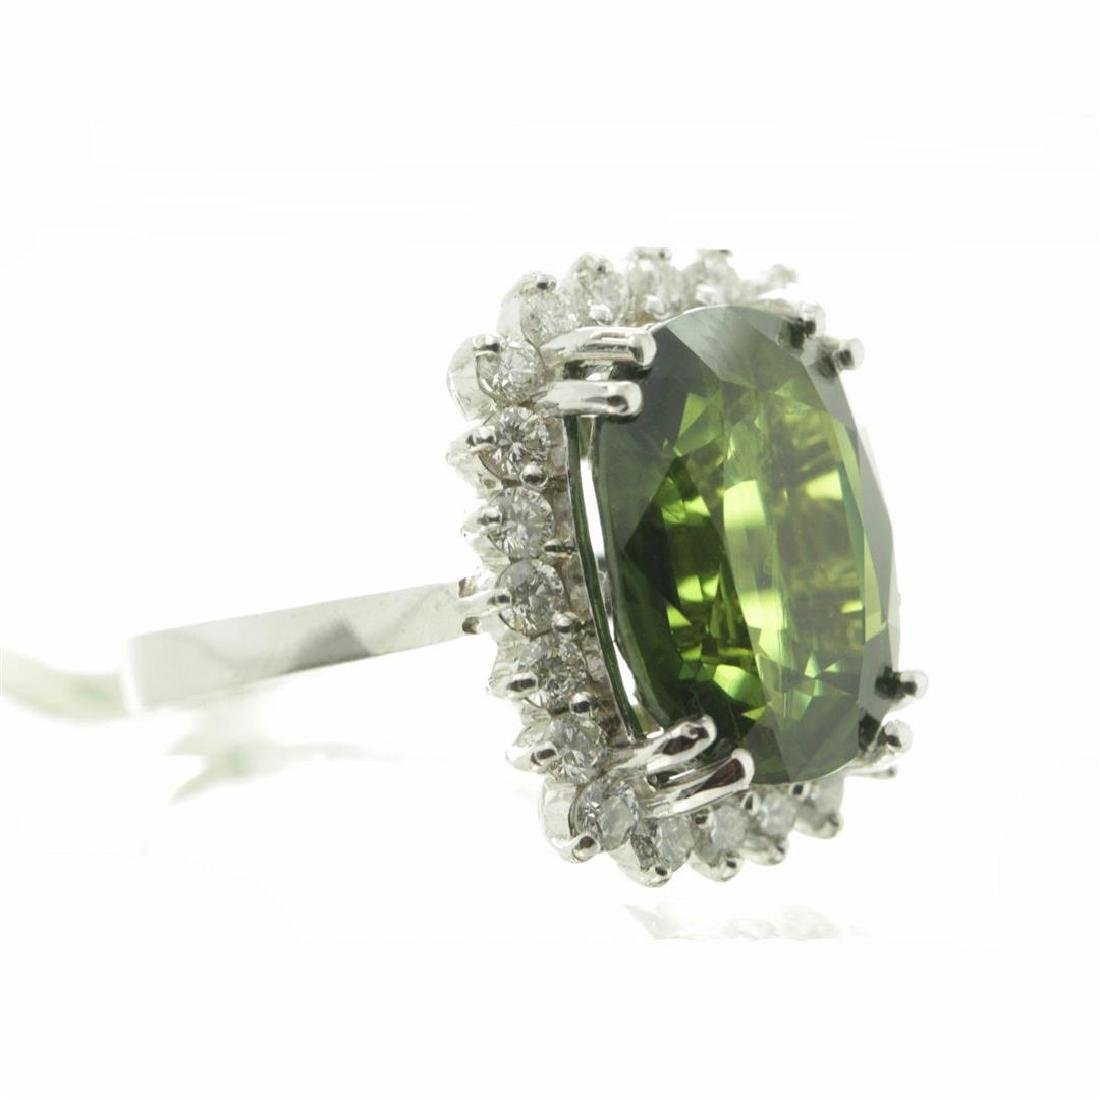 9.75 ctw Green Sapphire and Diamond Ring - 14KT White - 8